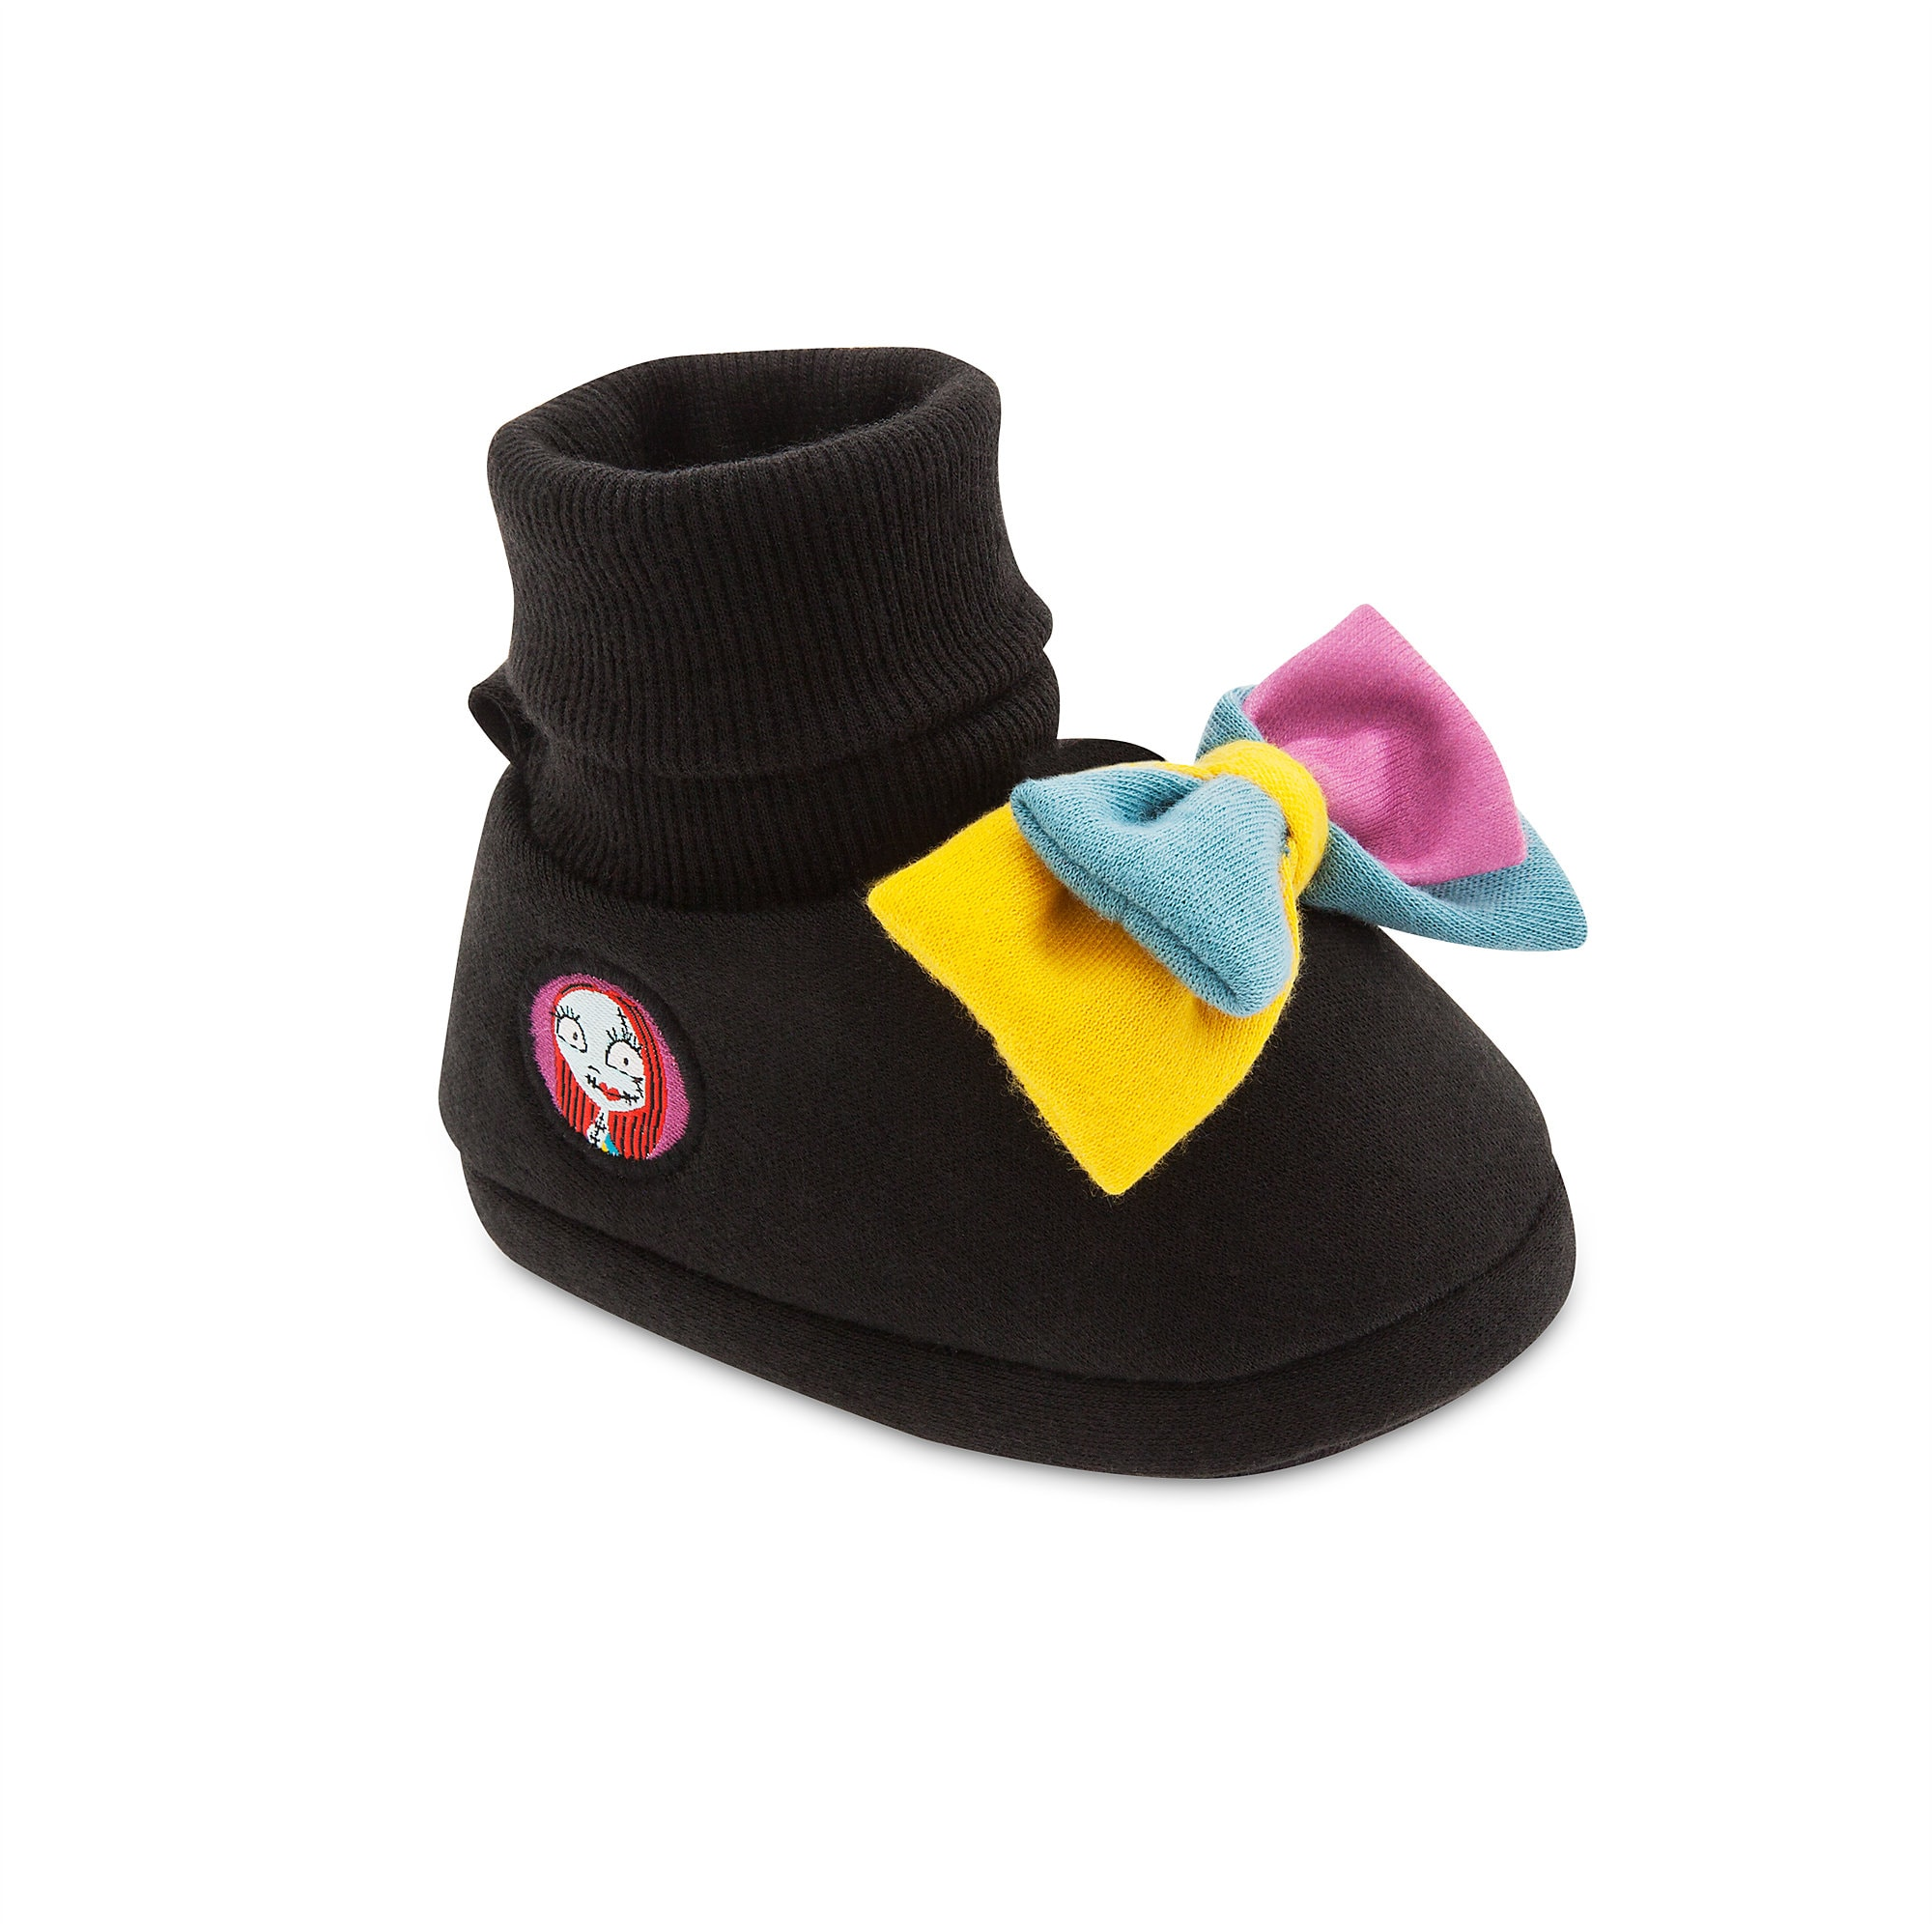 Sally Costume Shoes for Baby - The Nightmare Before Christmas